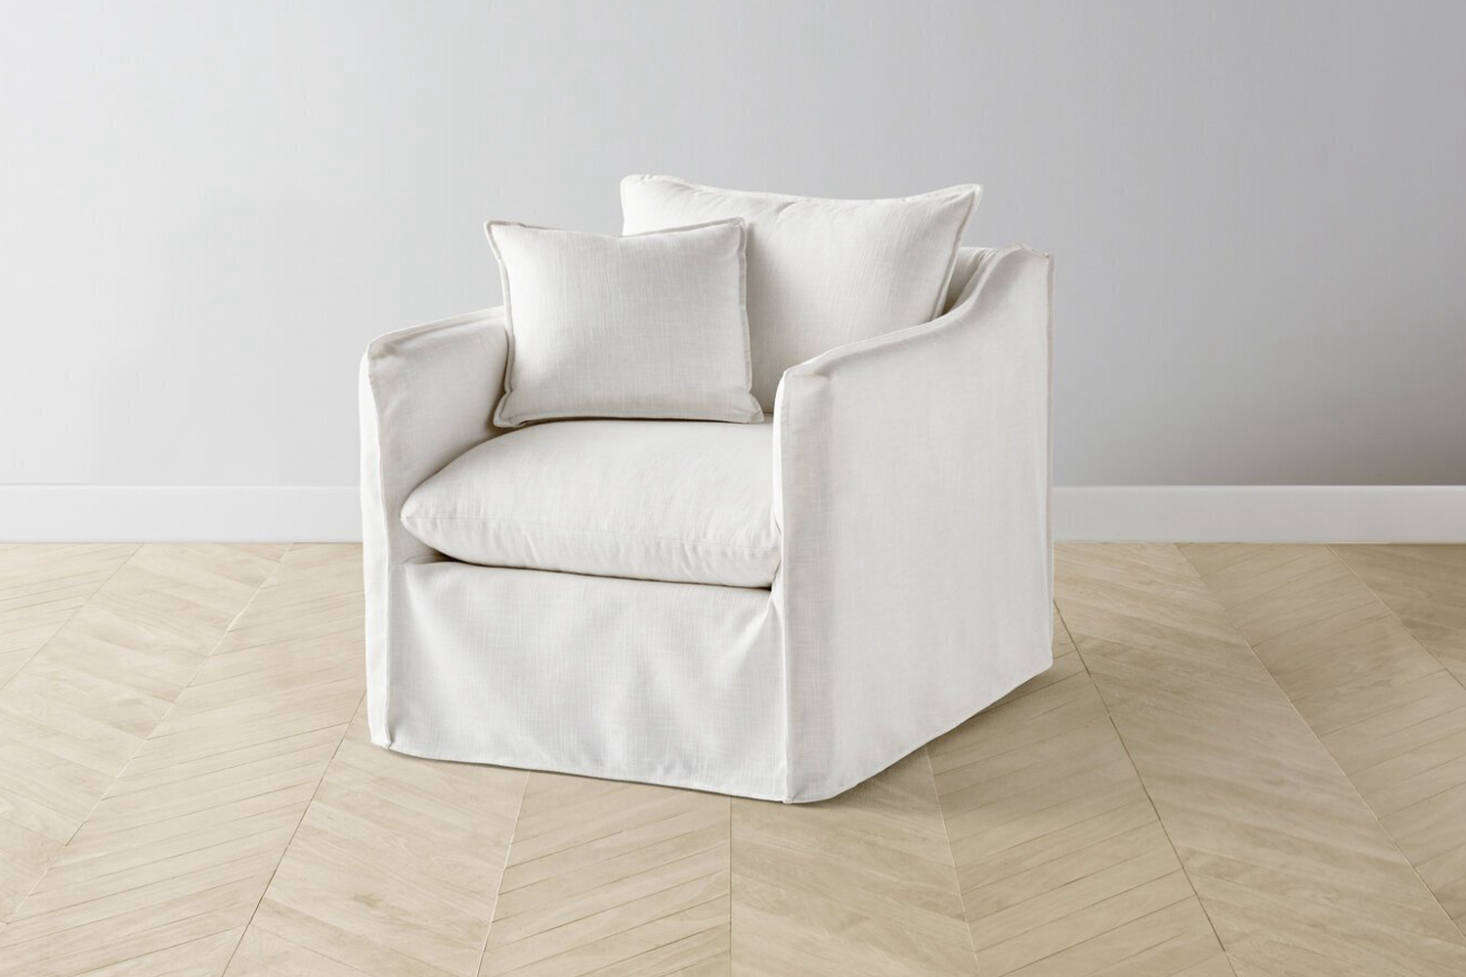 From new company Maiden Home, the Dune Chair is $src=